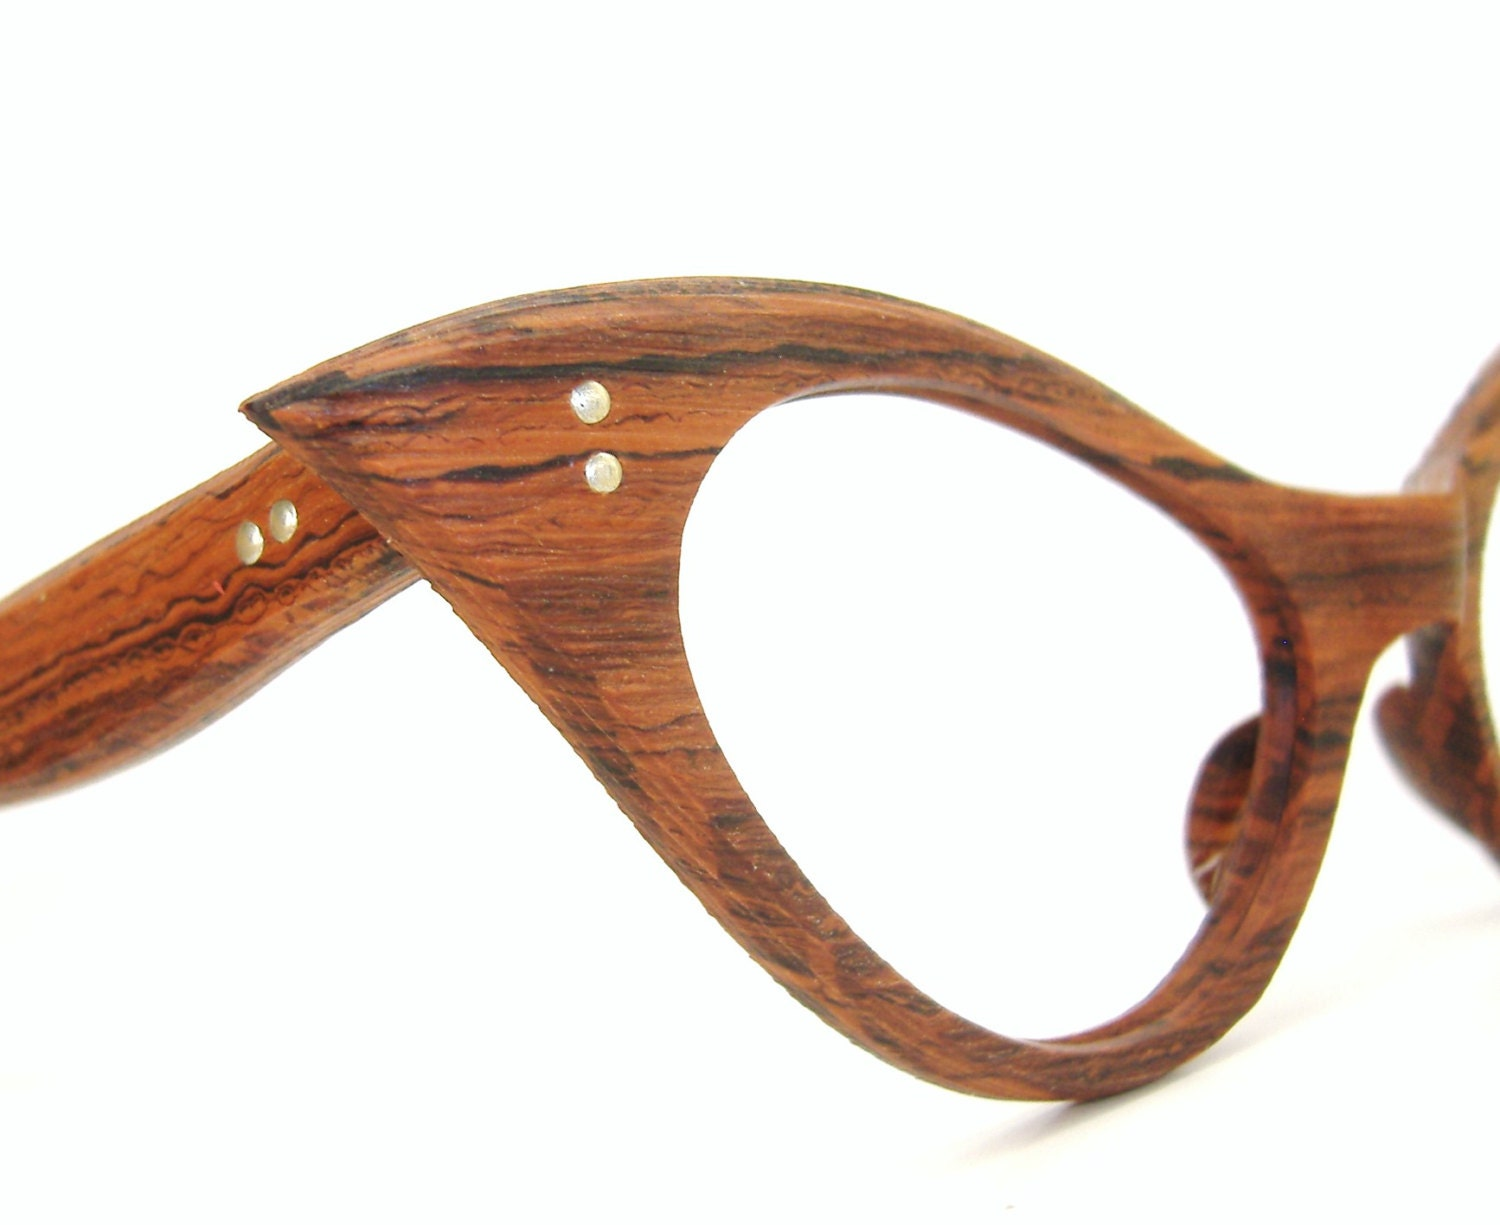 vintage cat eye eyeglasses frame unique wood grain look nos